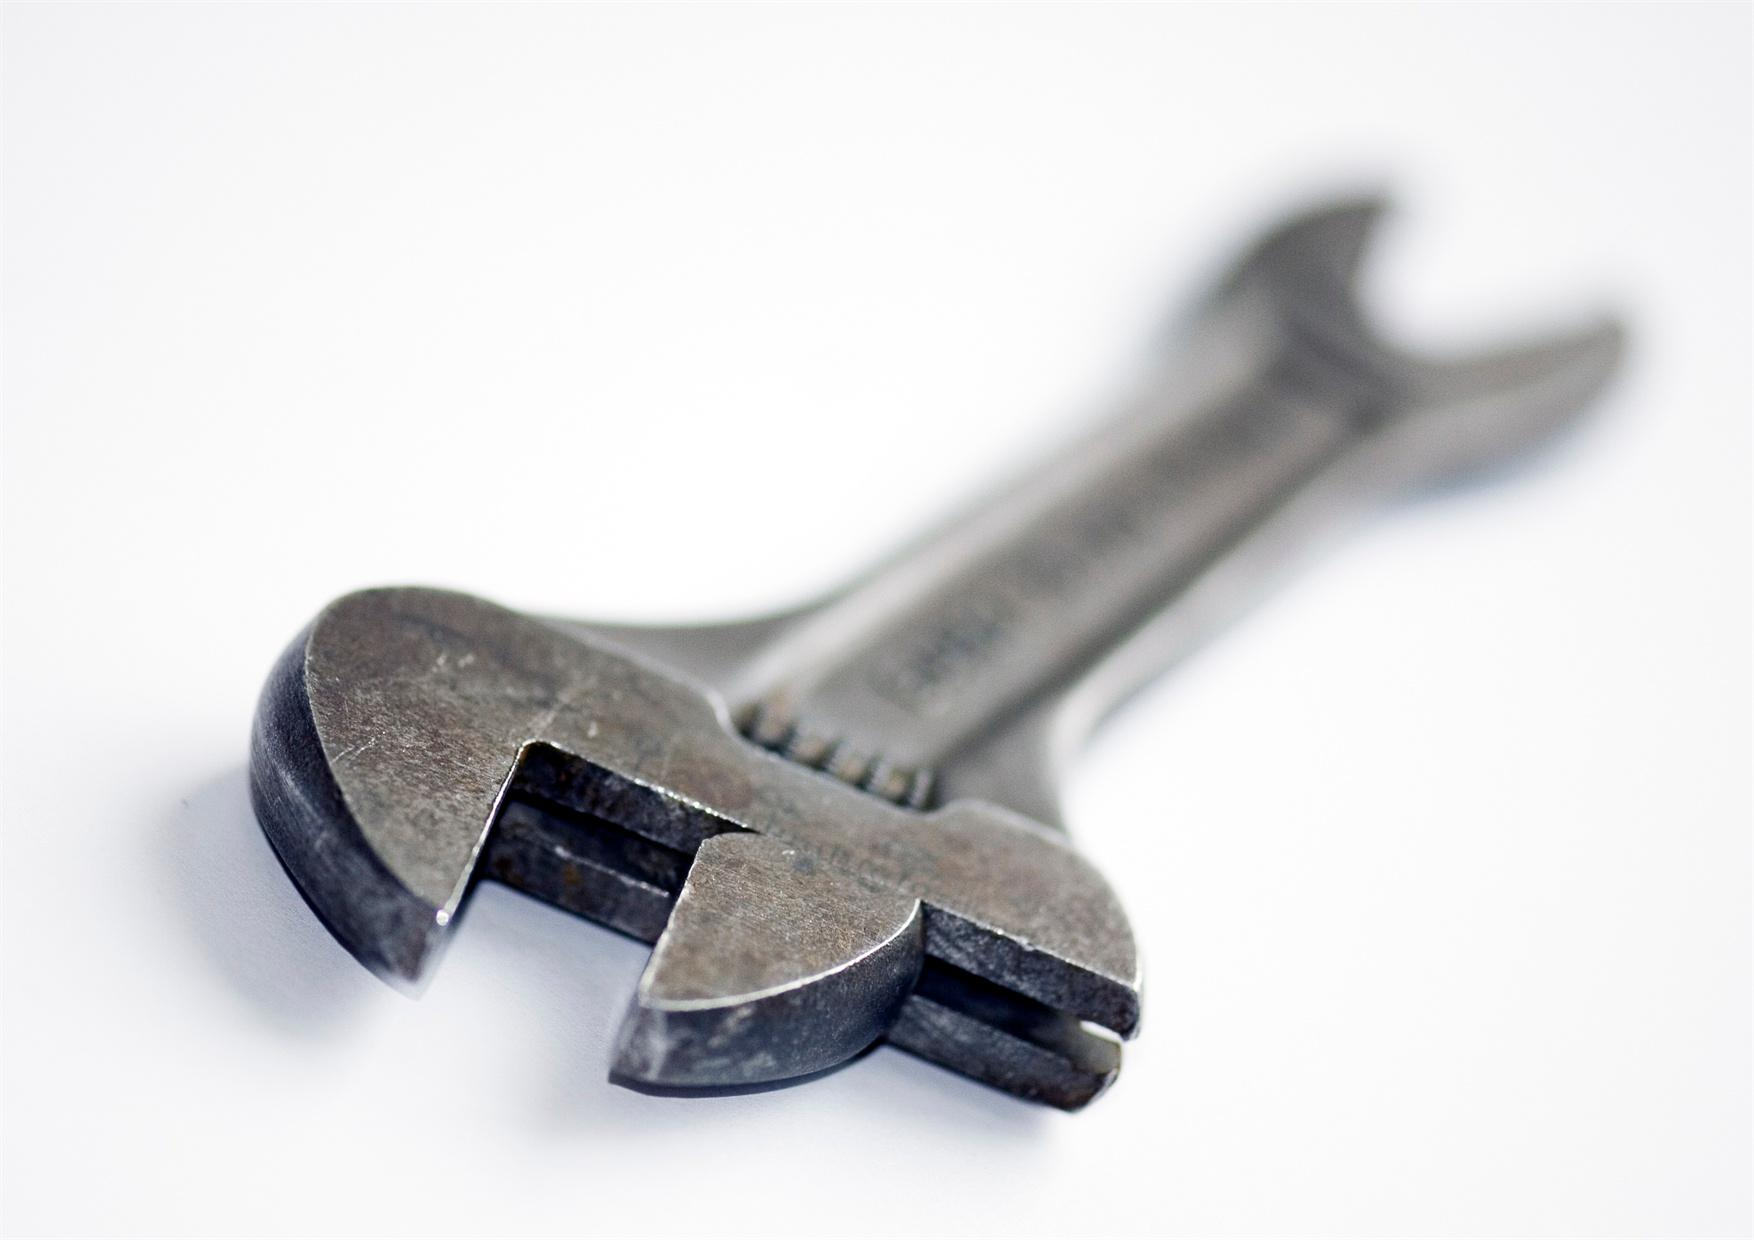 An adjustable wrench that lies diagonally.